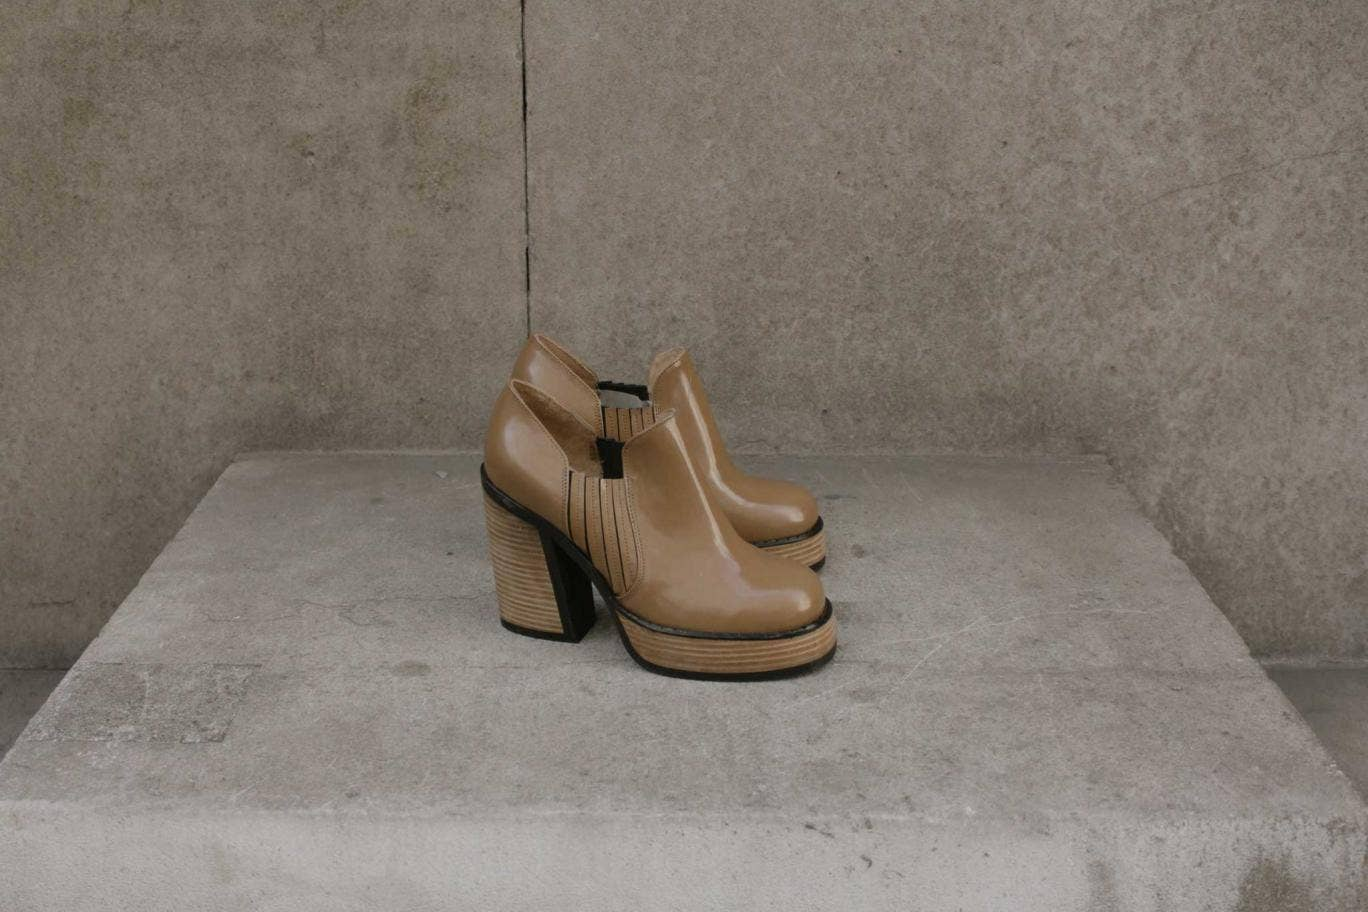 Fancy some footwear that's a bit 1970s, a bit Scandi and perfect for the coming season – or rather the microseason, when the sun comes out but it isn't sandal weather just yet? Well, Purified's new shoes, available at Selfridges, are diverting and directi